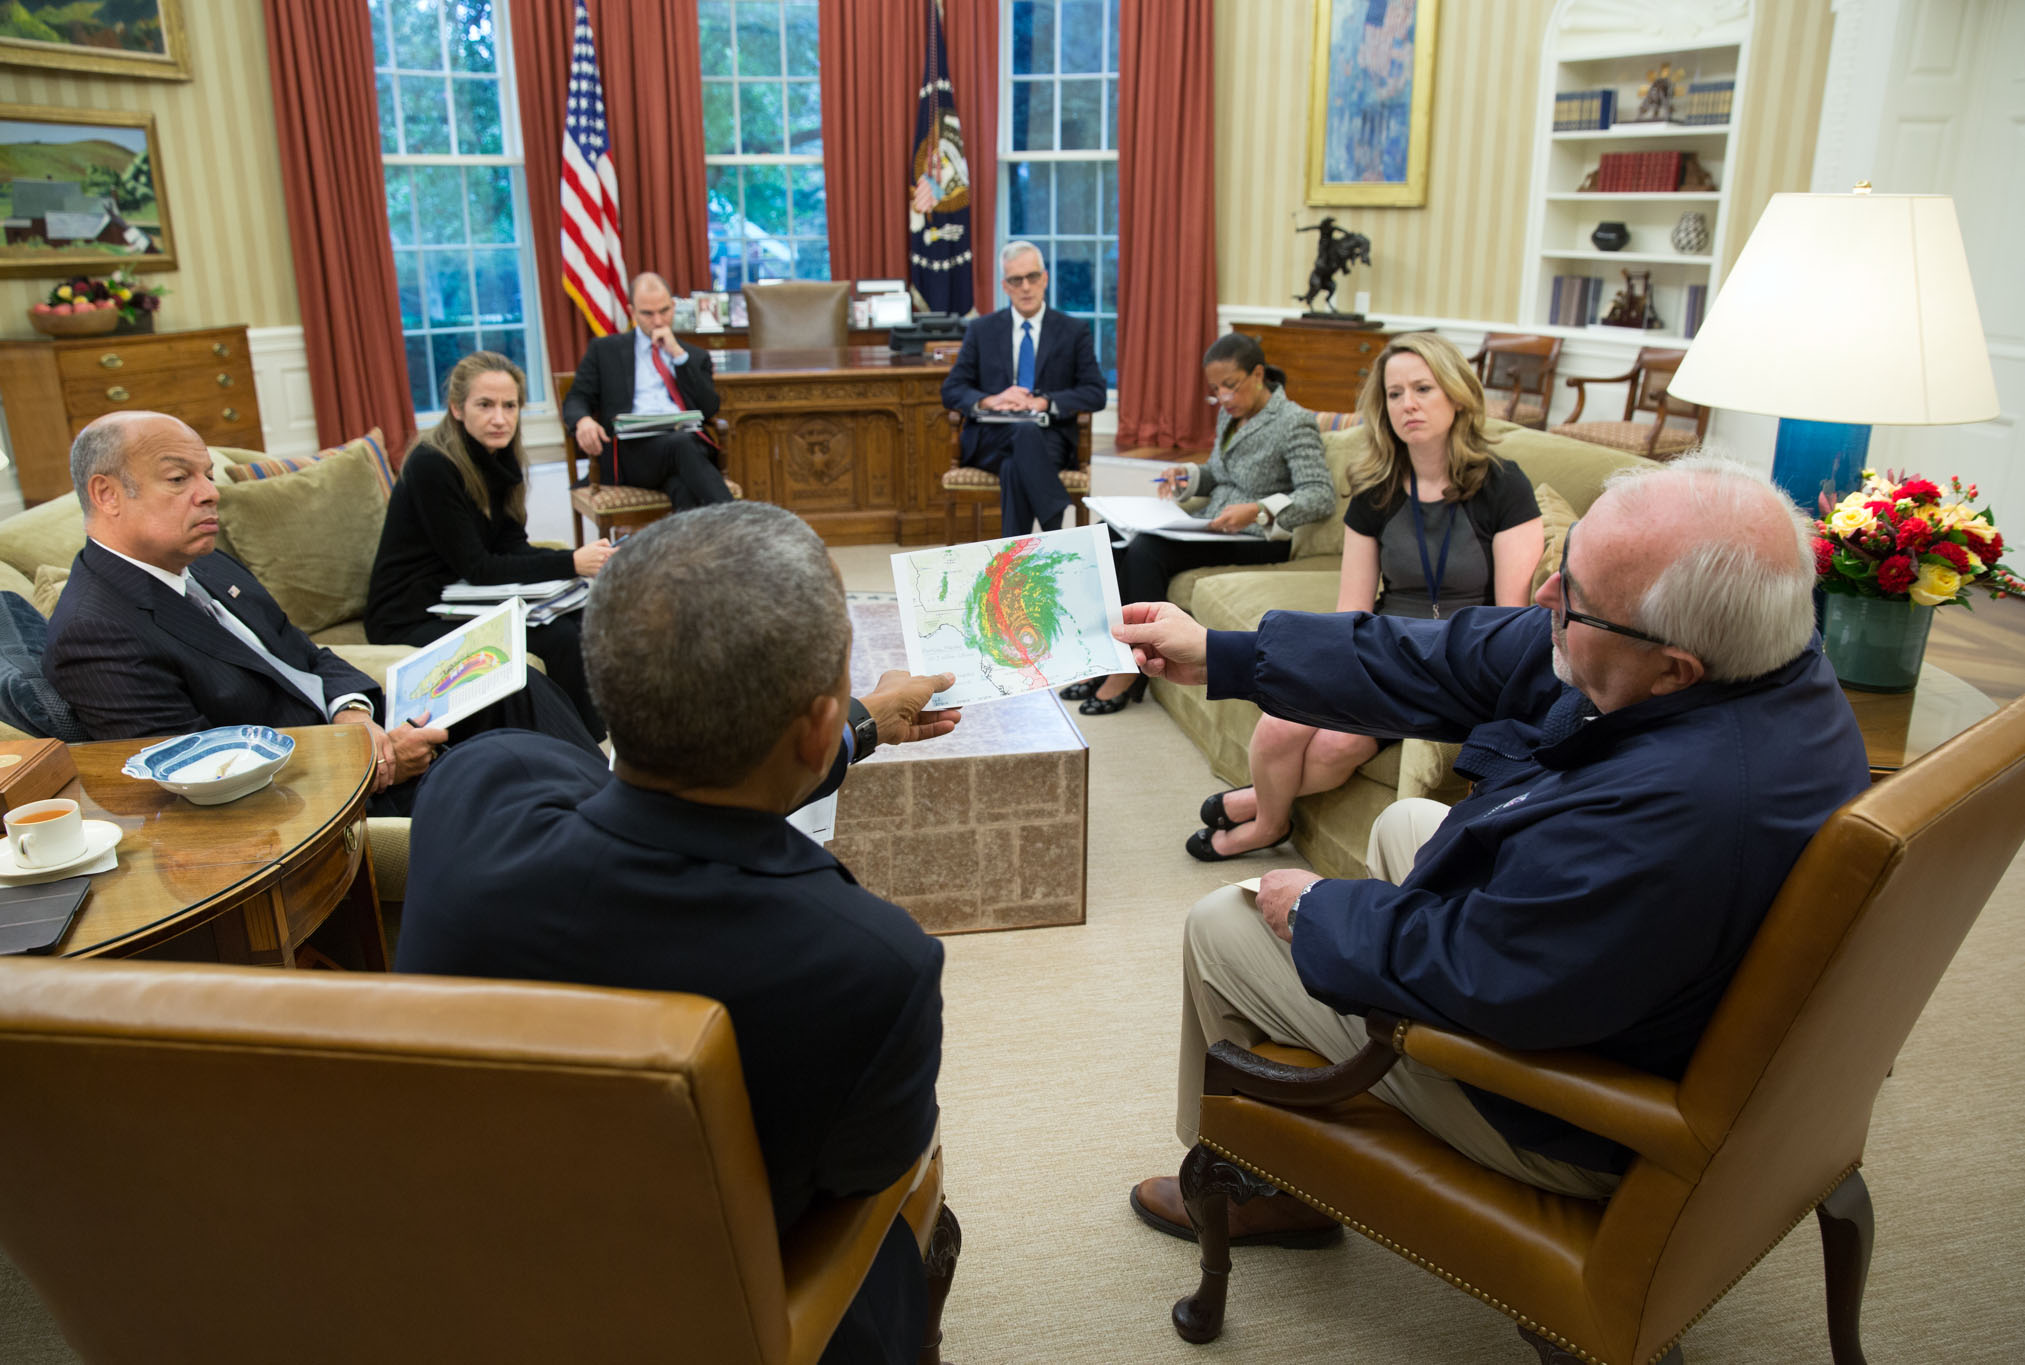 President Obama is updated on Hurricane Matthew